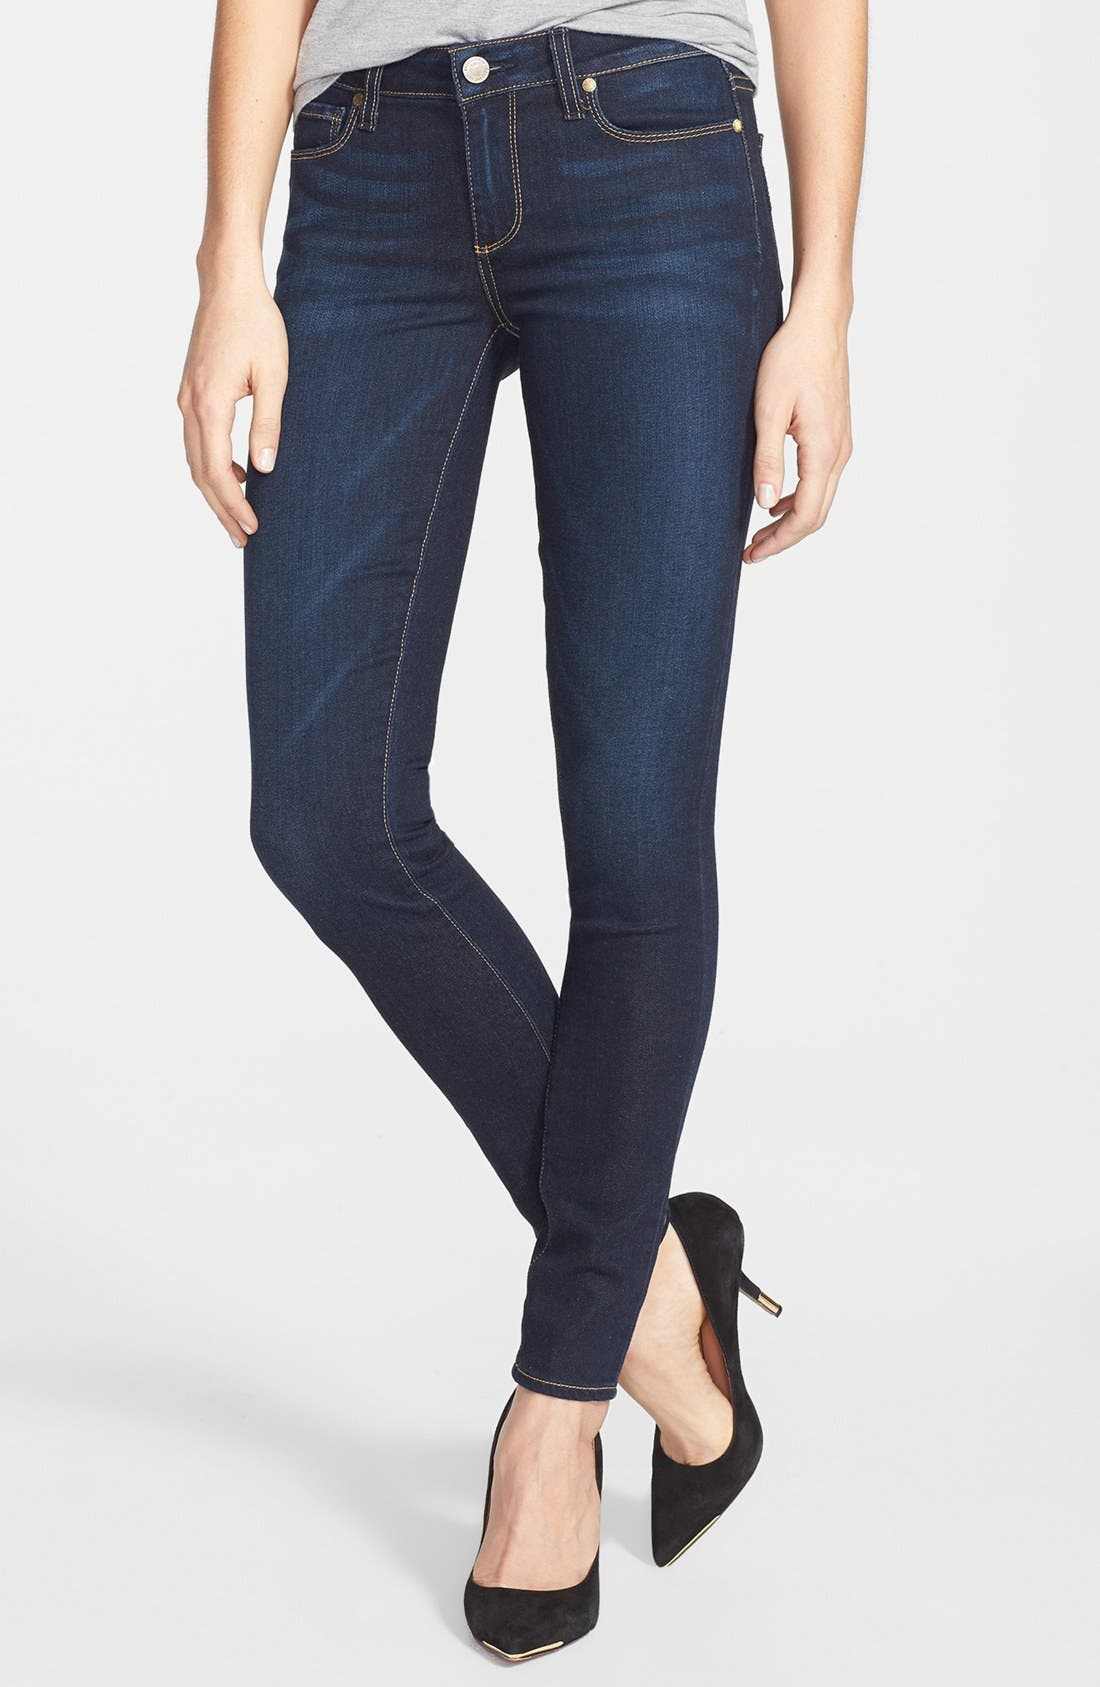 Main Image - Paige Denim 'Verdugo' Ultra Skinny Jeans (Surface)